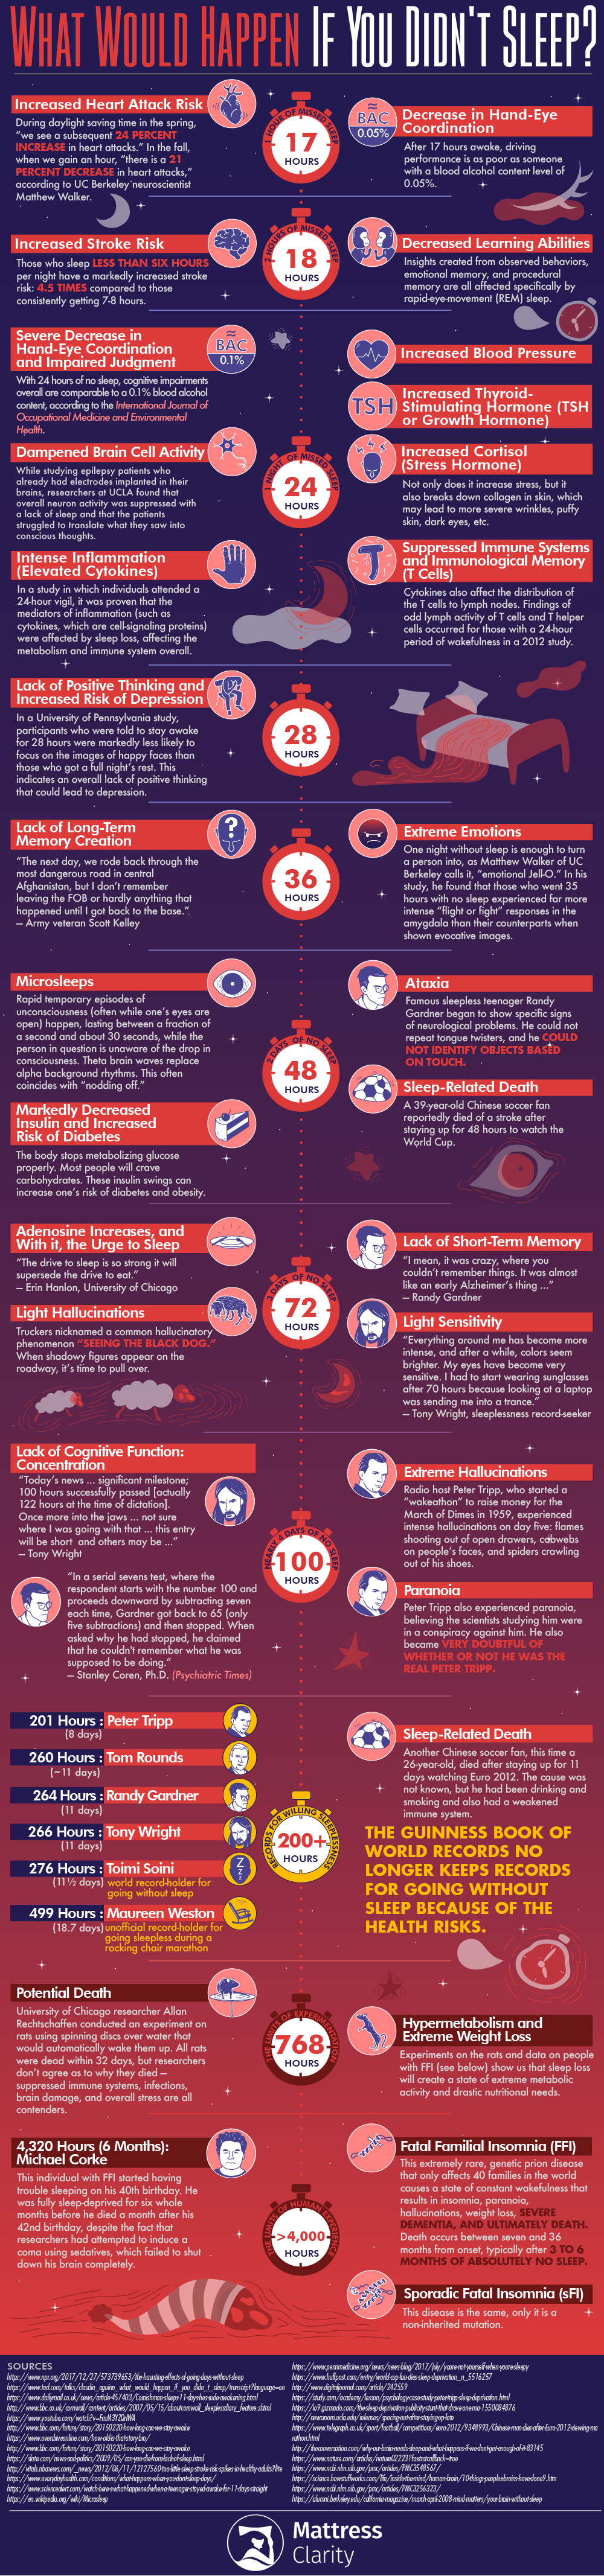 Sleep or Die: The Nasty Side-Effects of Sleeplessness - Infographic